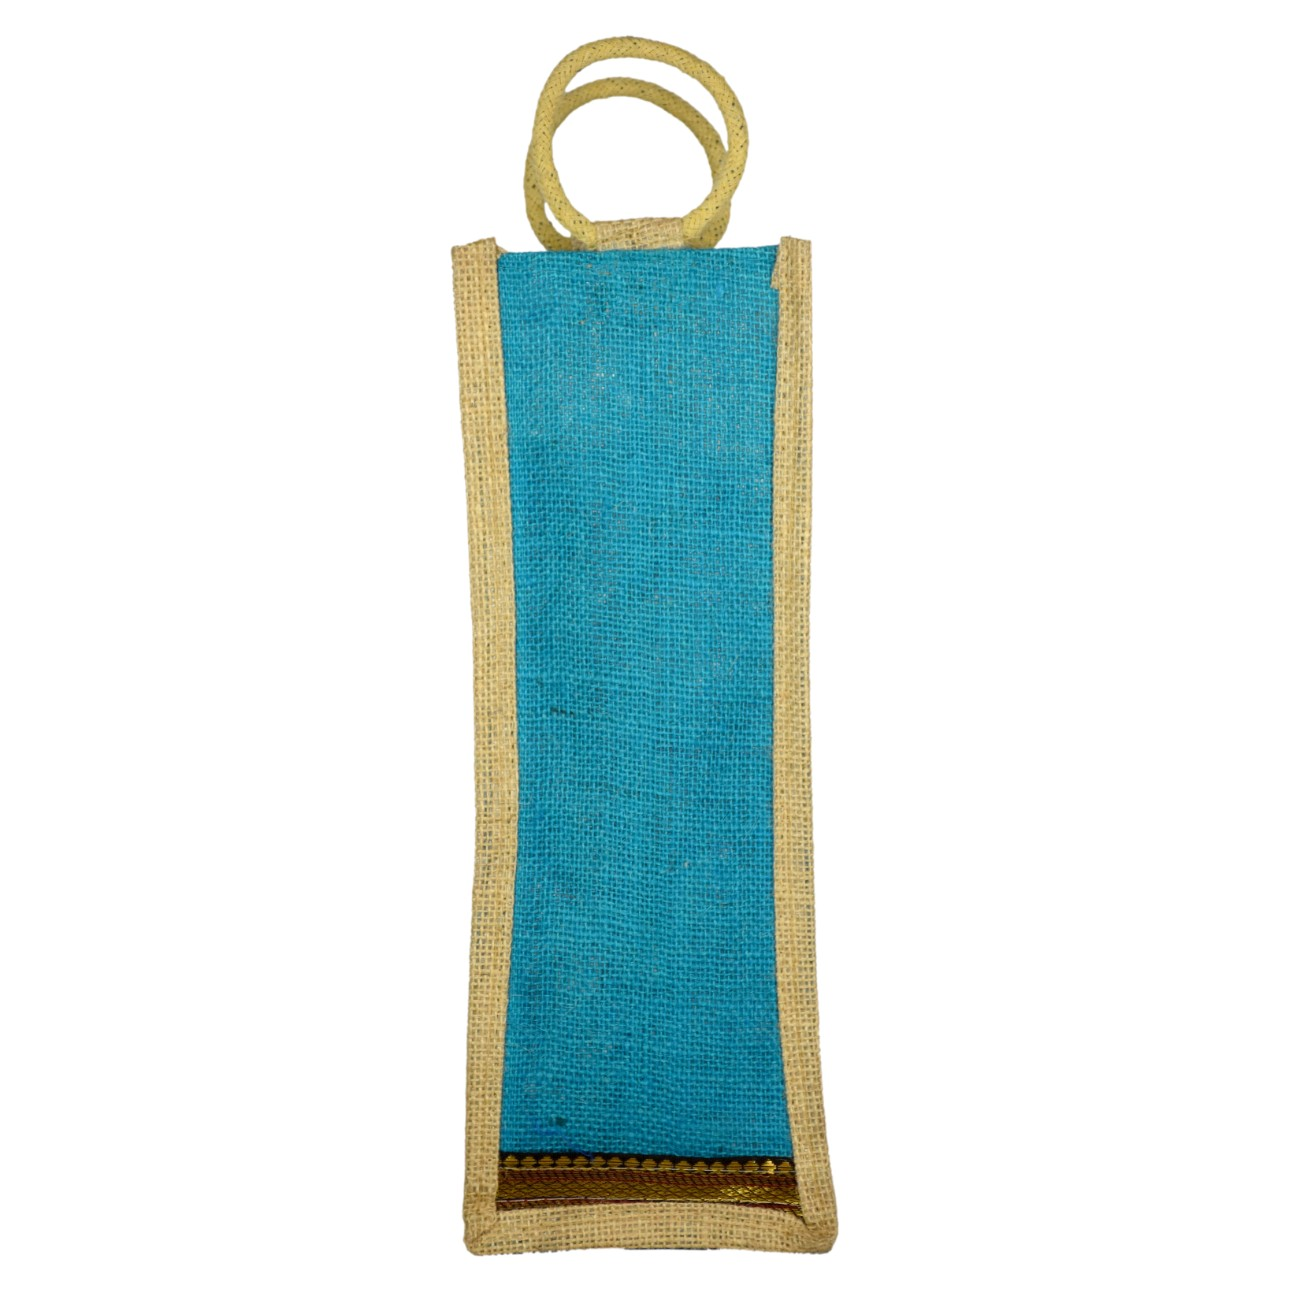 RYNA Jute Water Bottle,Carry Bags,Wine Bag with Reinforced Handles   Color May Vary